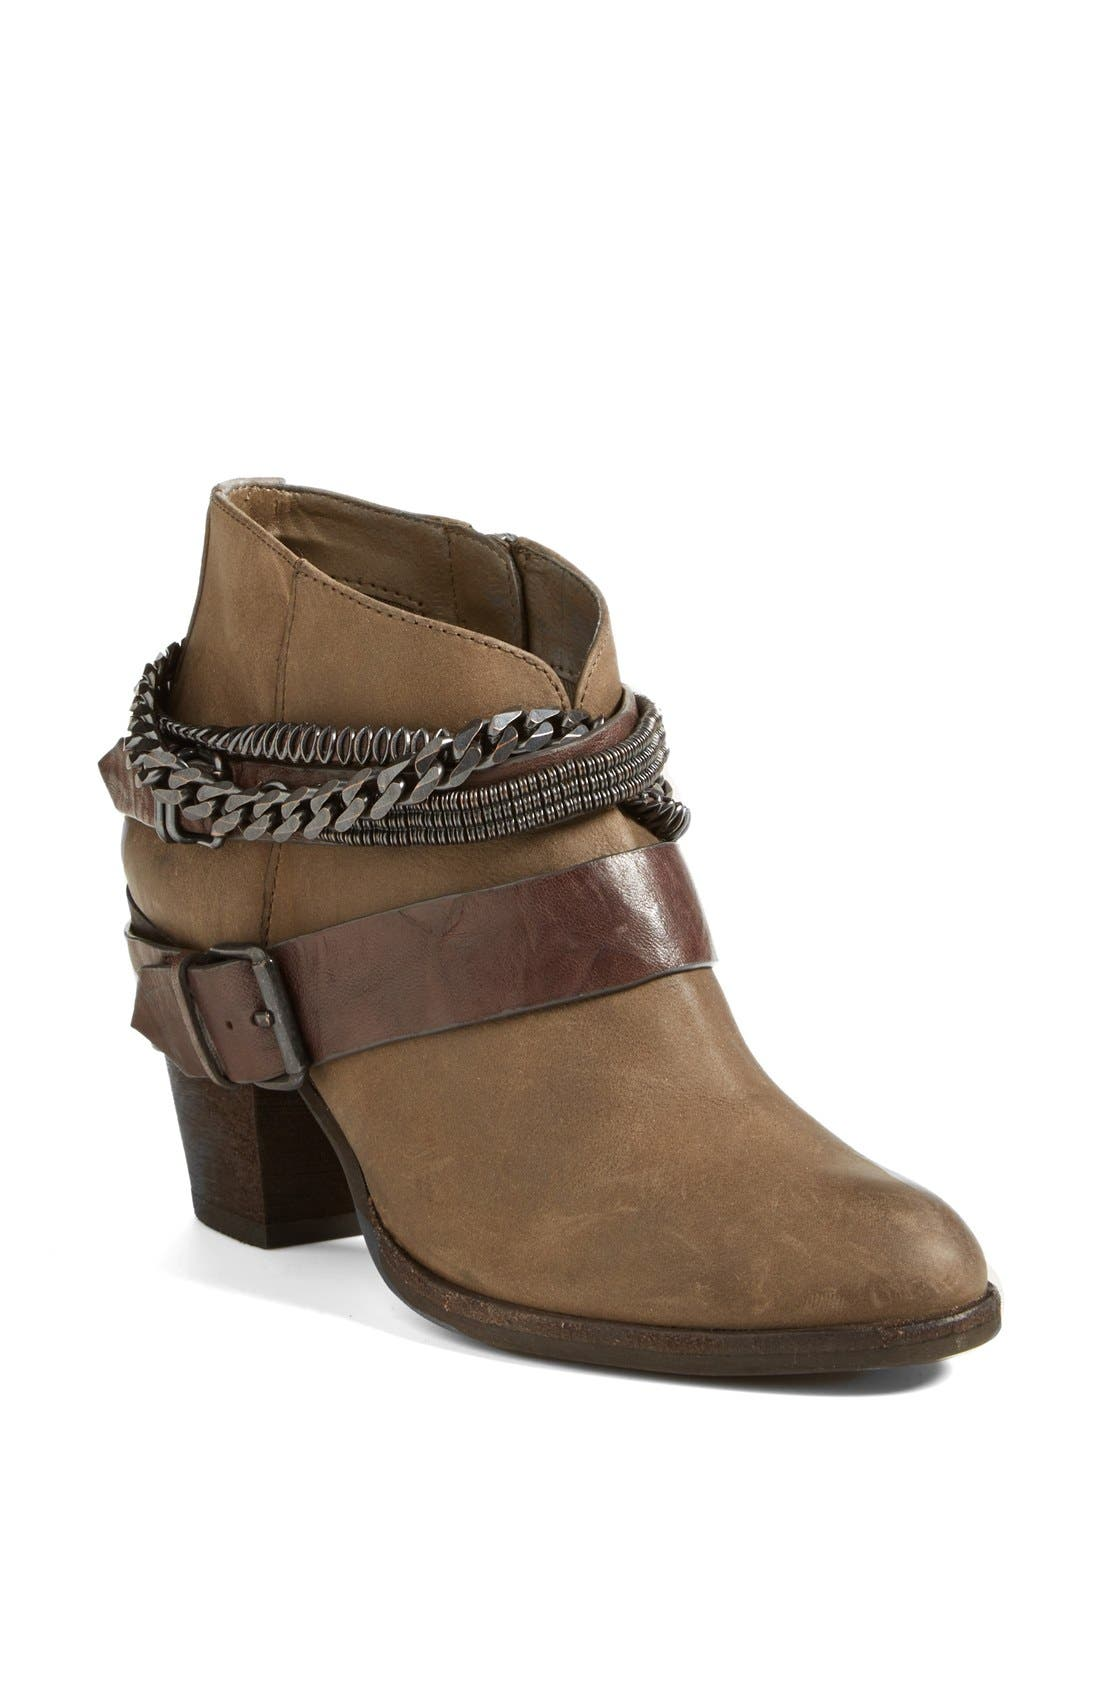 Alternate Image 1 Selected - Dolce Vita 'Yazmina' Leather Bootie (Women)